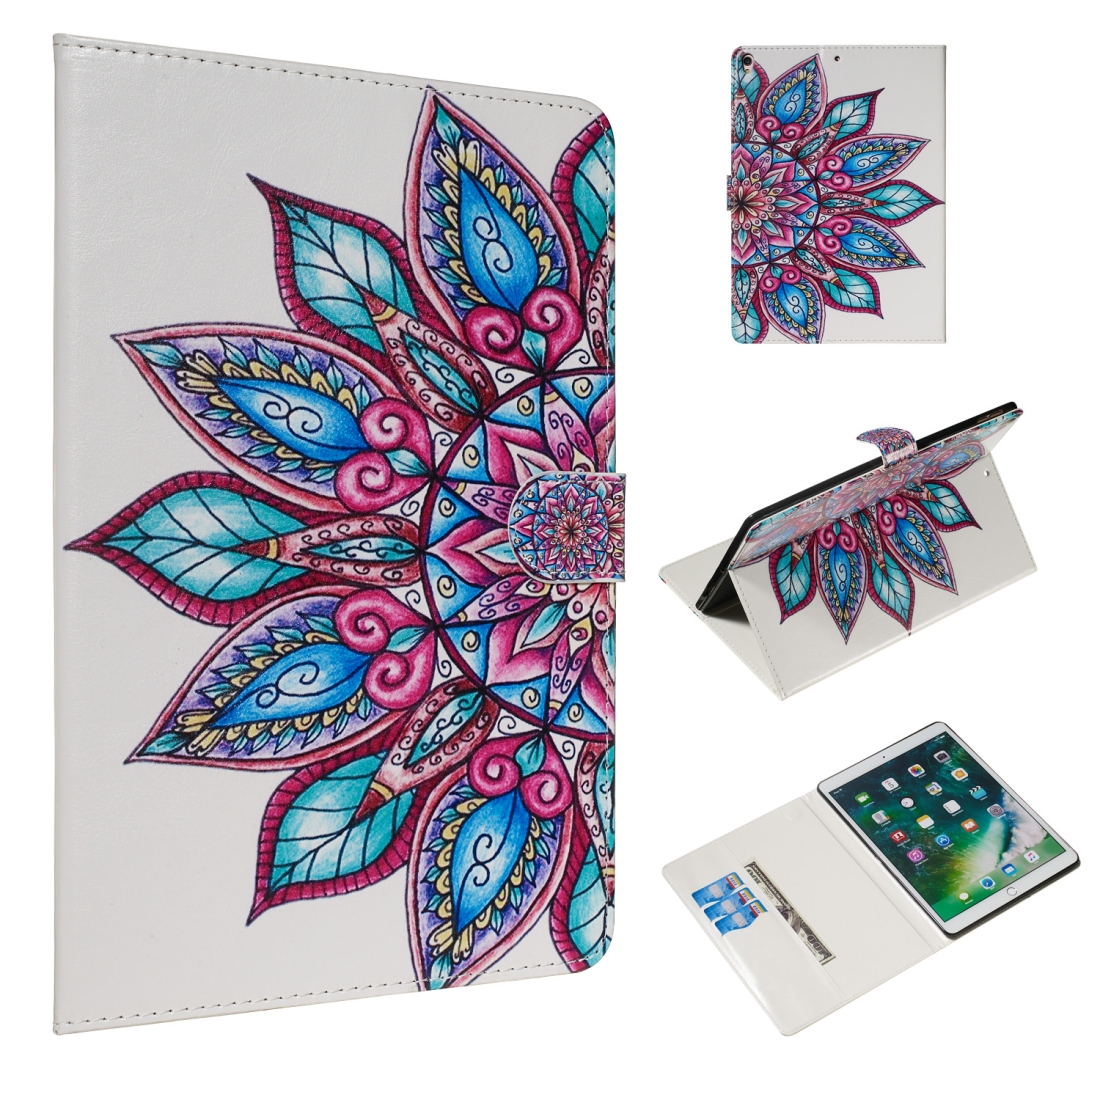 For iPad Air 10.5 (2019)/ iPad Pro 10.5 (2017) Leather Case with Sleeves (Half Flower)